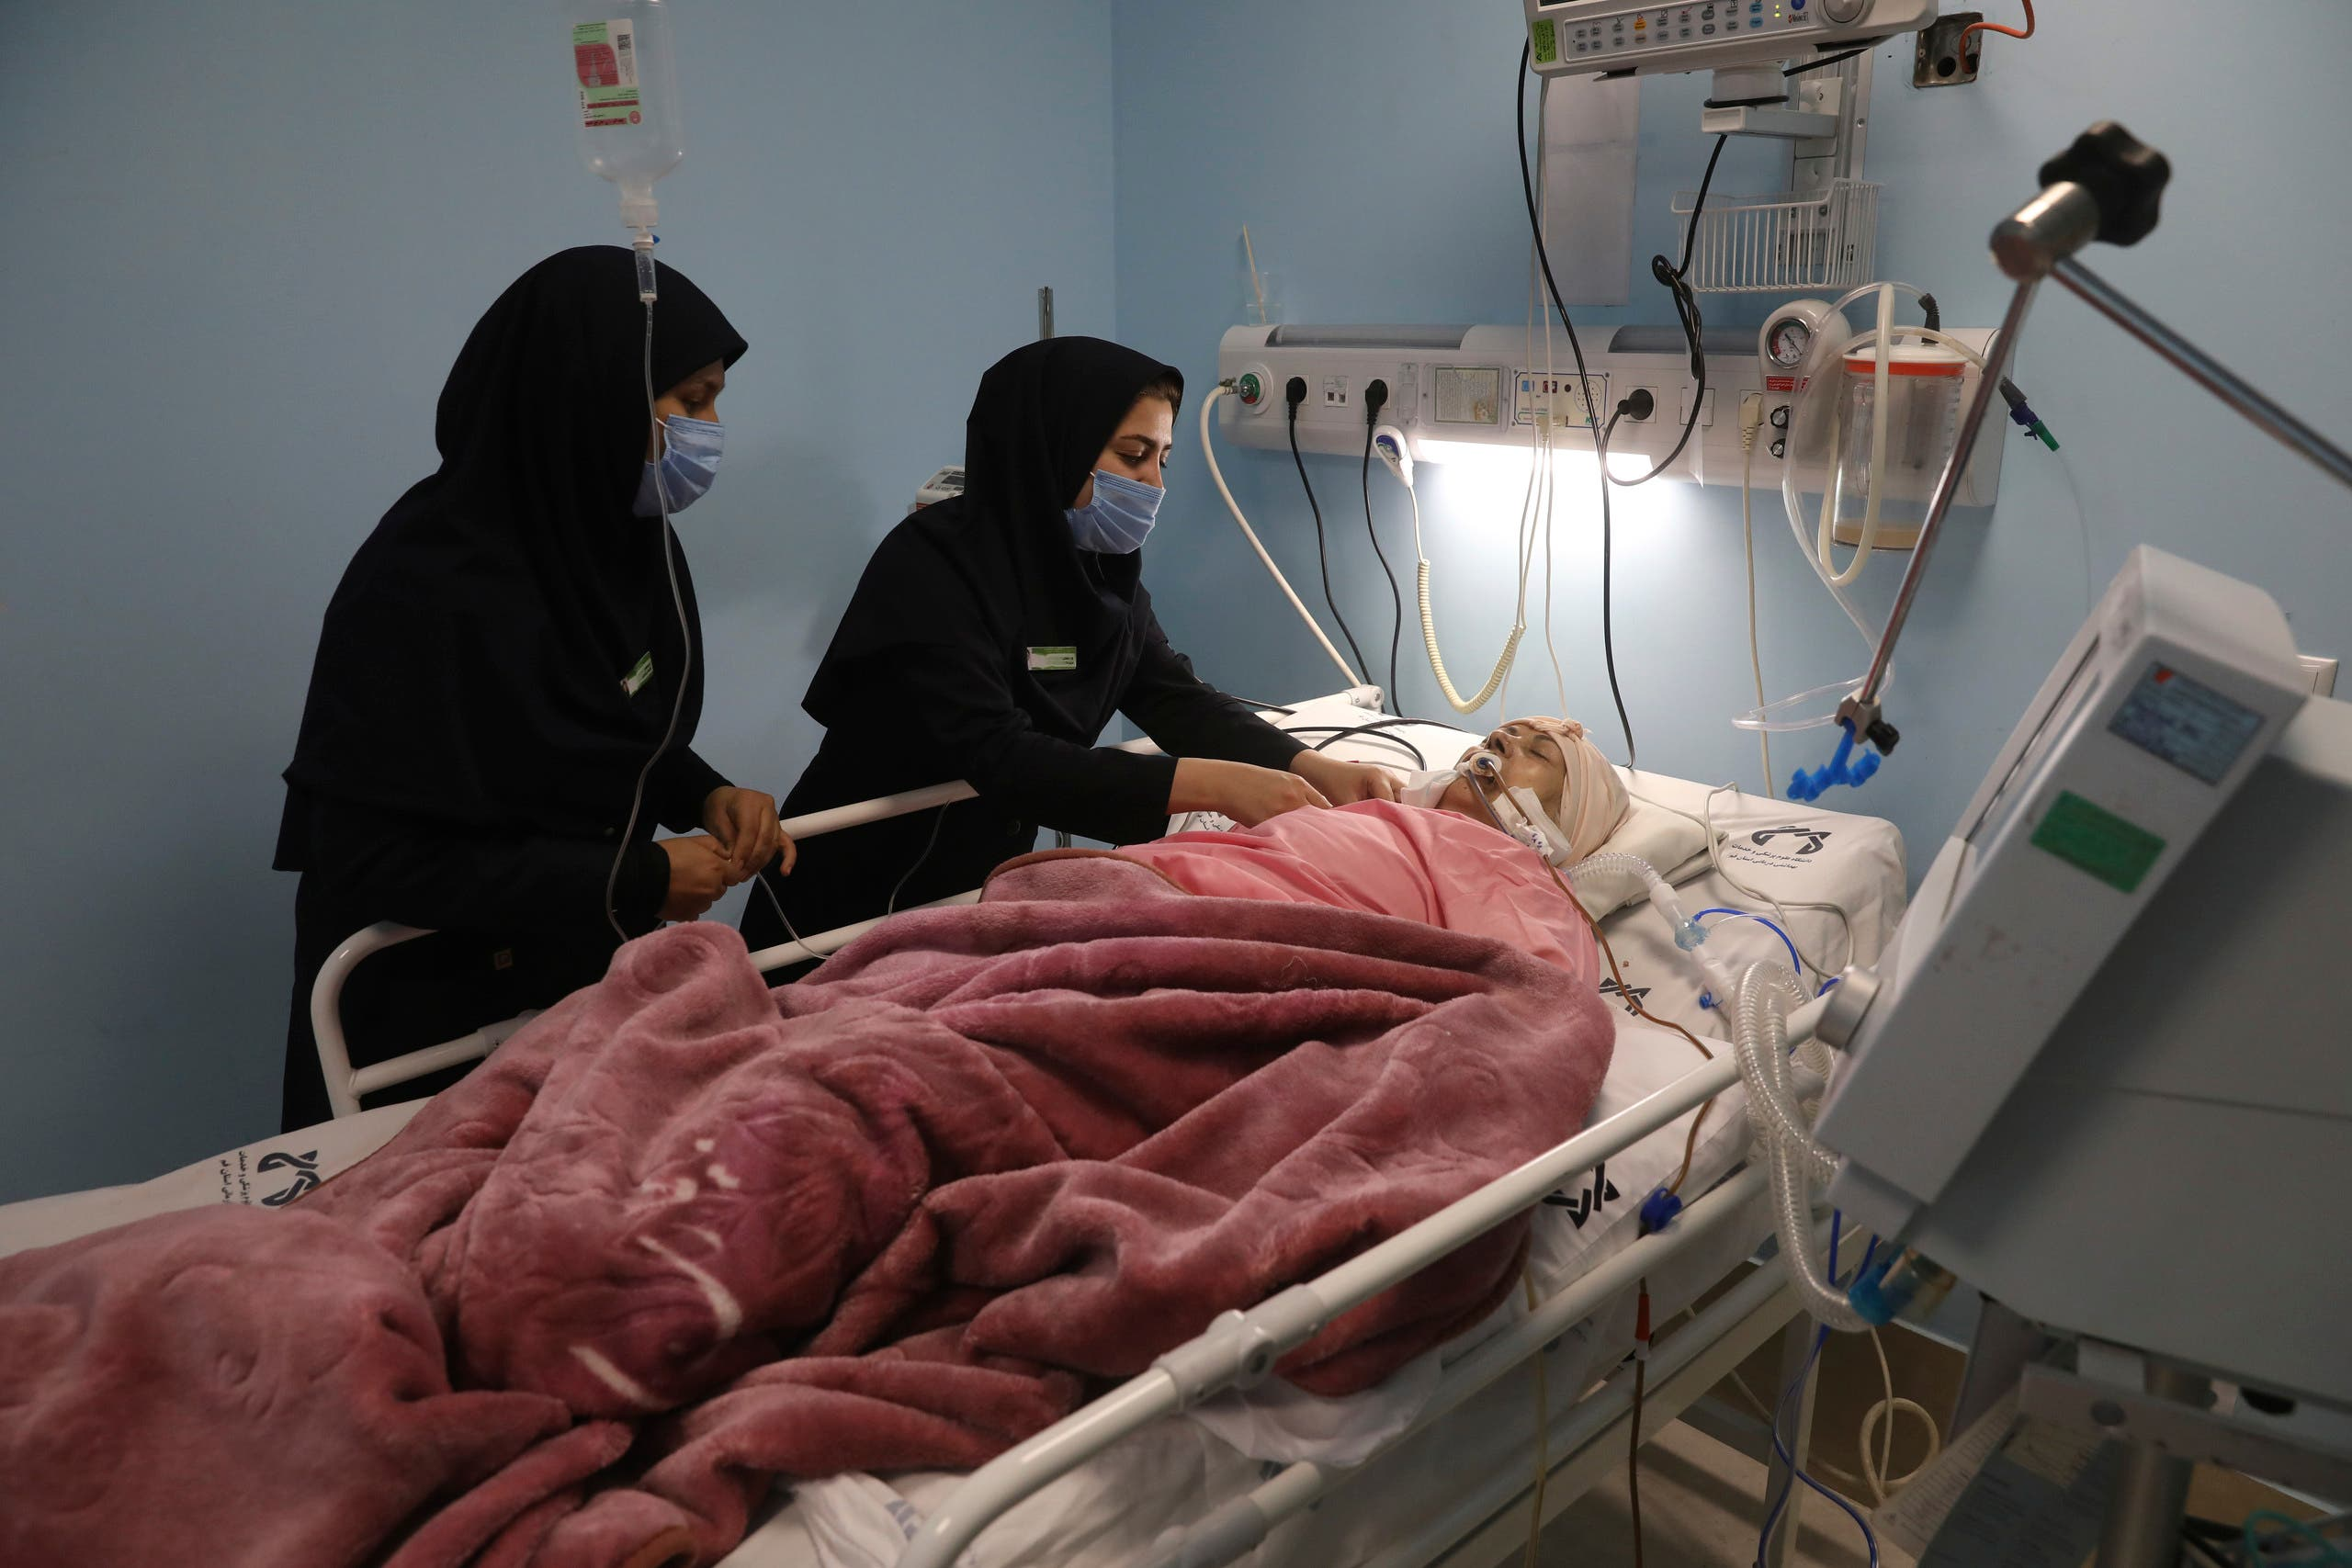 COVID-19 patient Marhamat Asadi, who is in a medically induced coma, is tended by nurses Fatemeh Najmeh Sadeghi, left, and Fereshteh Babakhanlou, at the COVID-19 ICU ward of Amir Al-Momenin hospital in the city of Qom, some 80 miles (125 kilometers) south of the capital Tehran, Iran, Wednesday, Sept. 15, 2021. (AP)